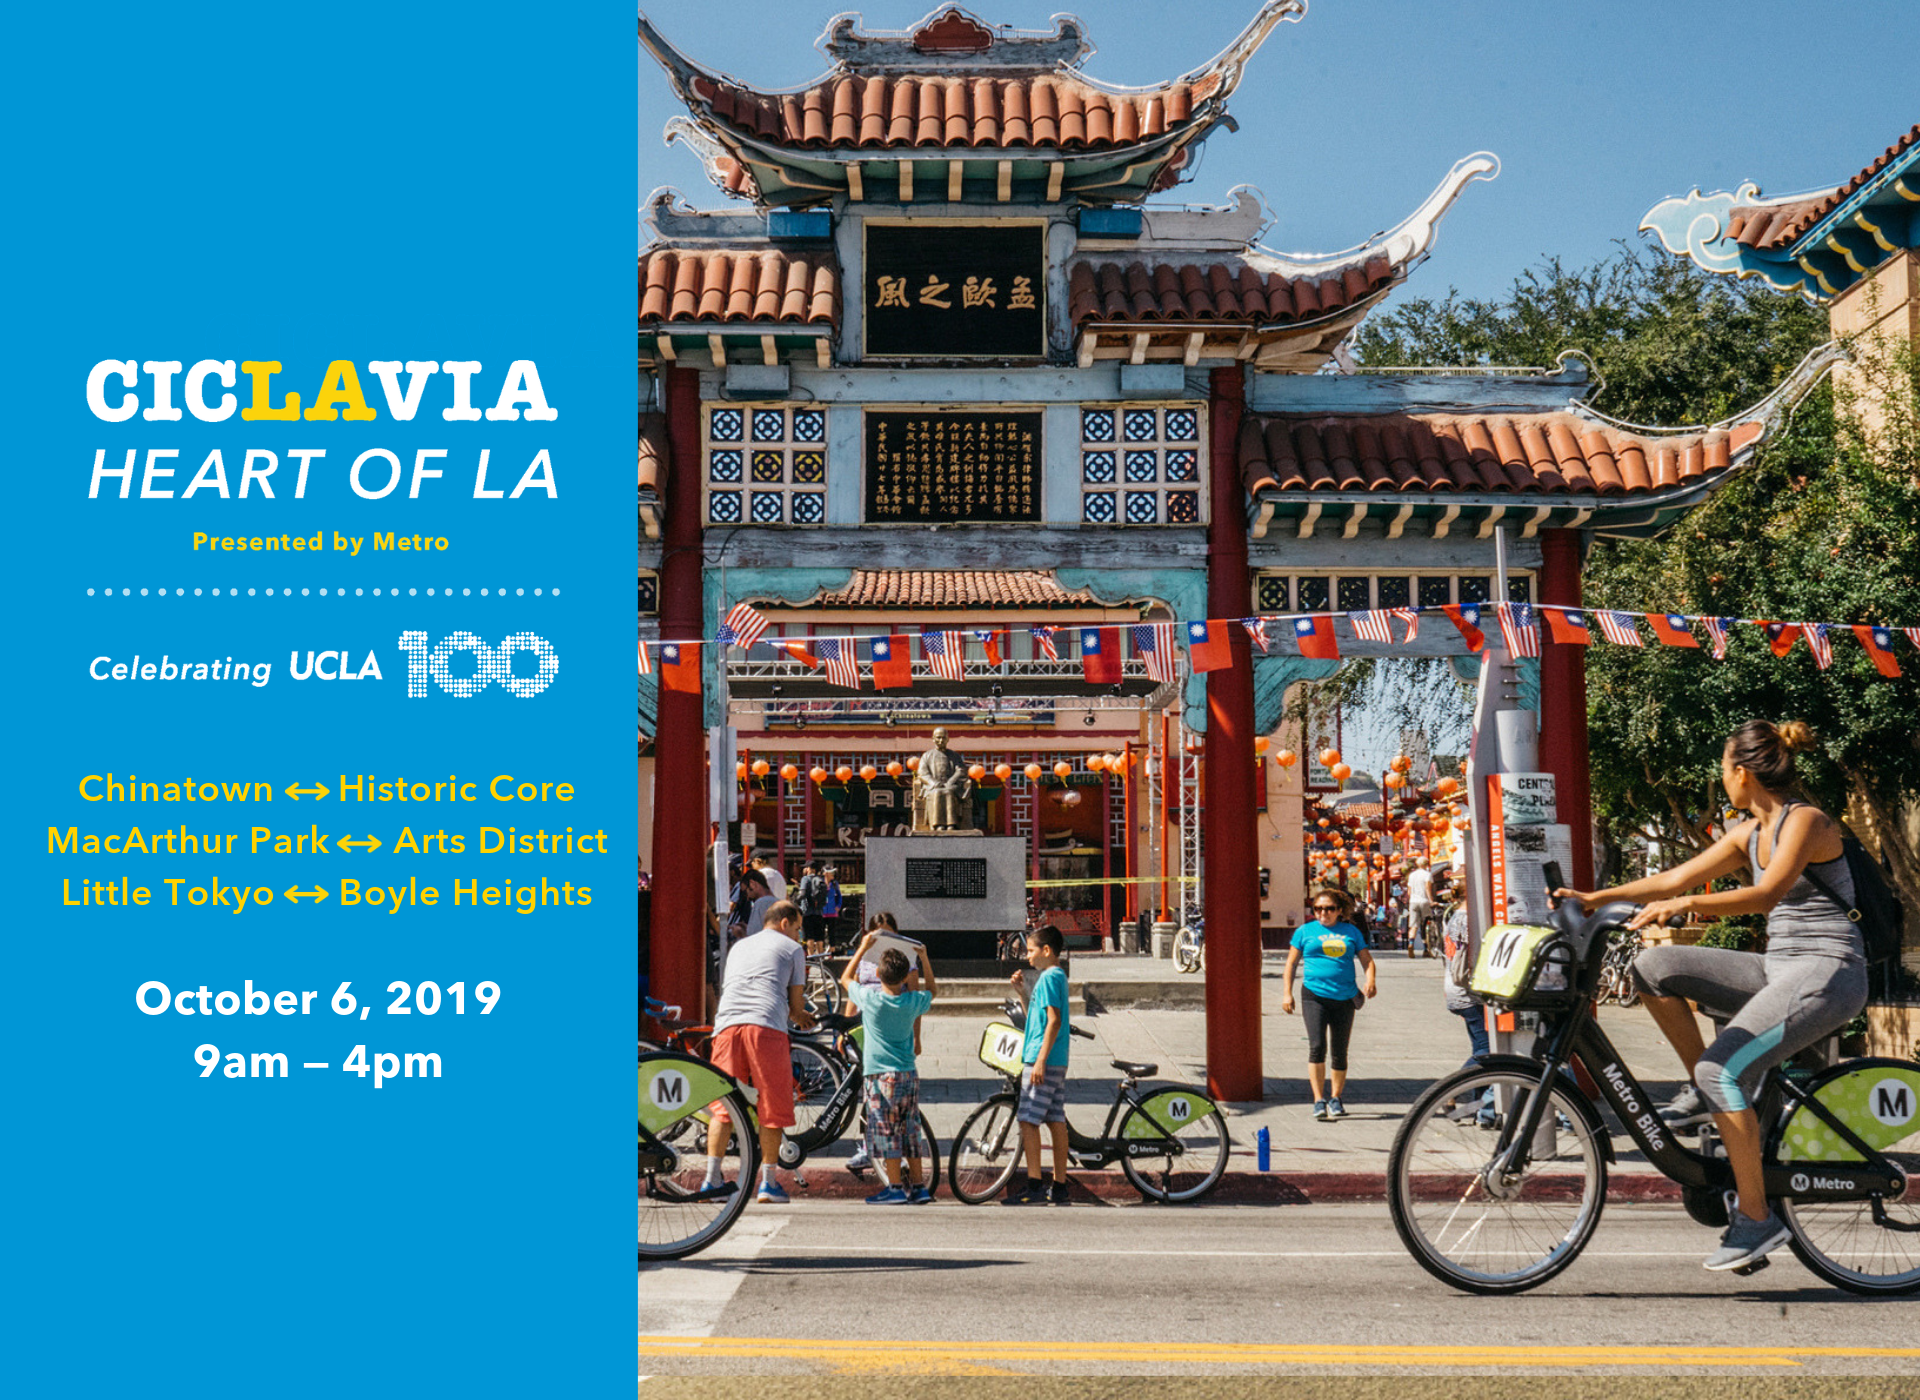 Heart of LA Celebrating UCLA100